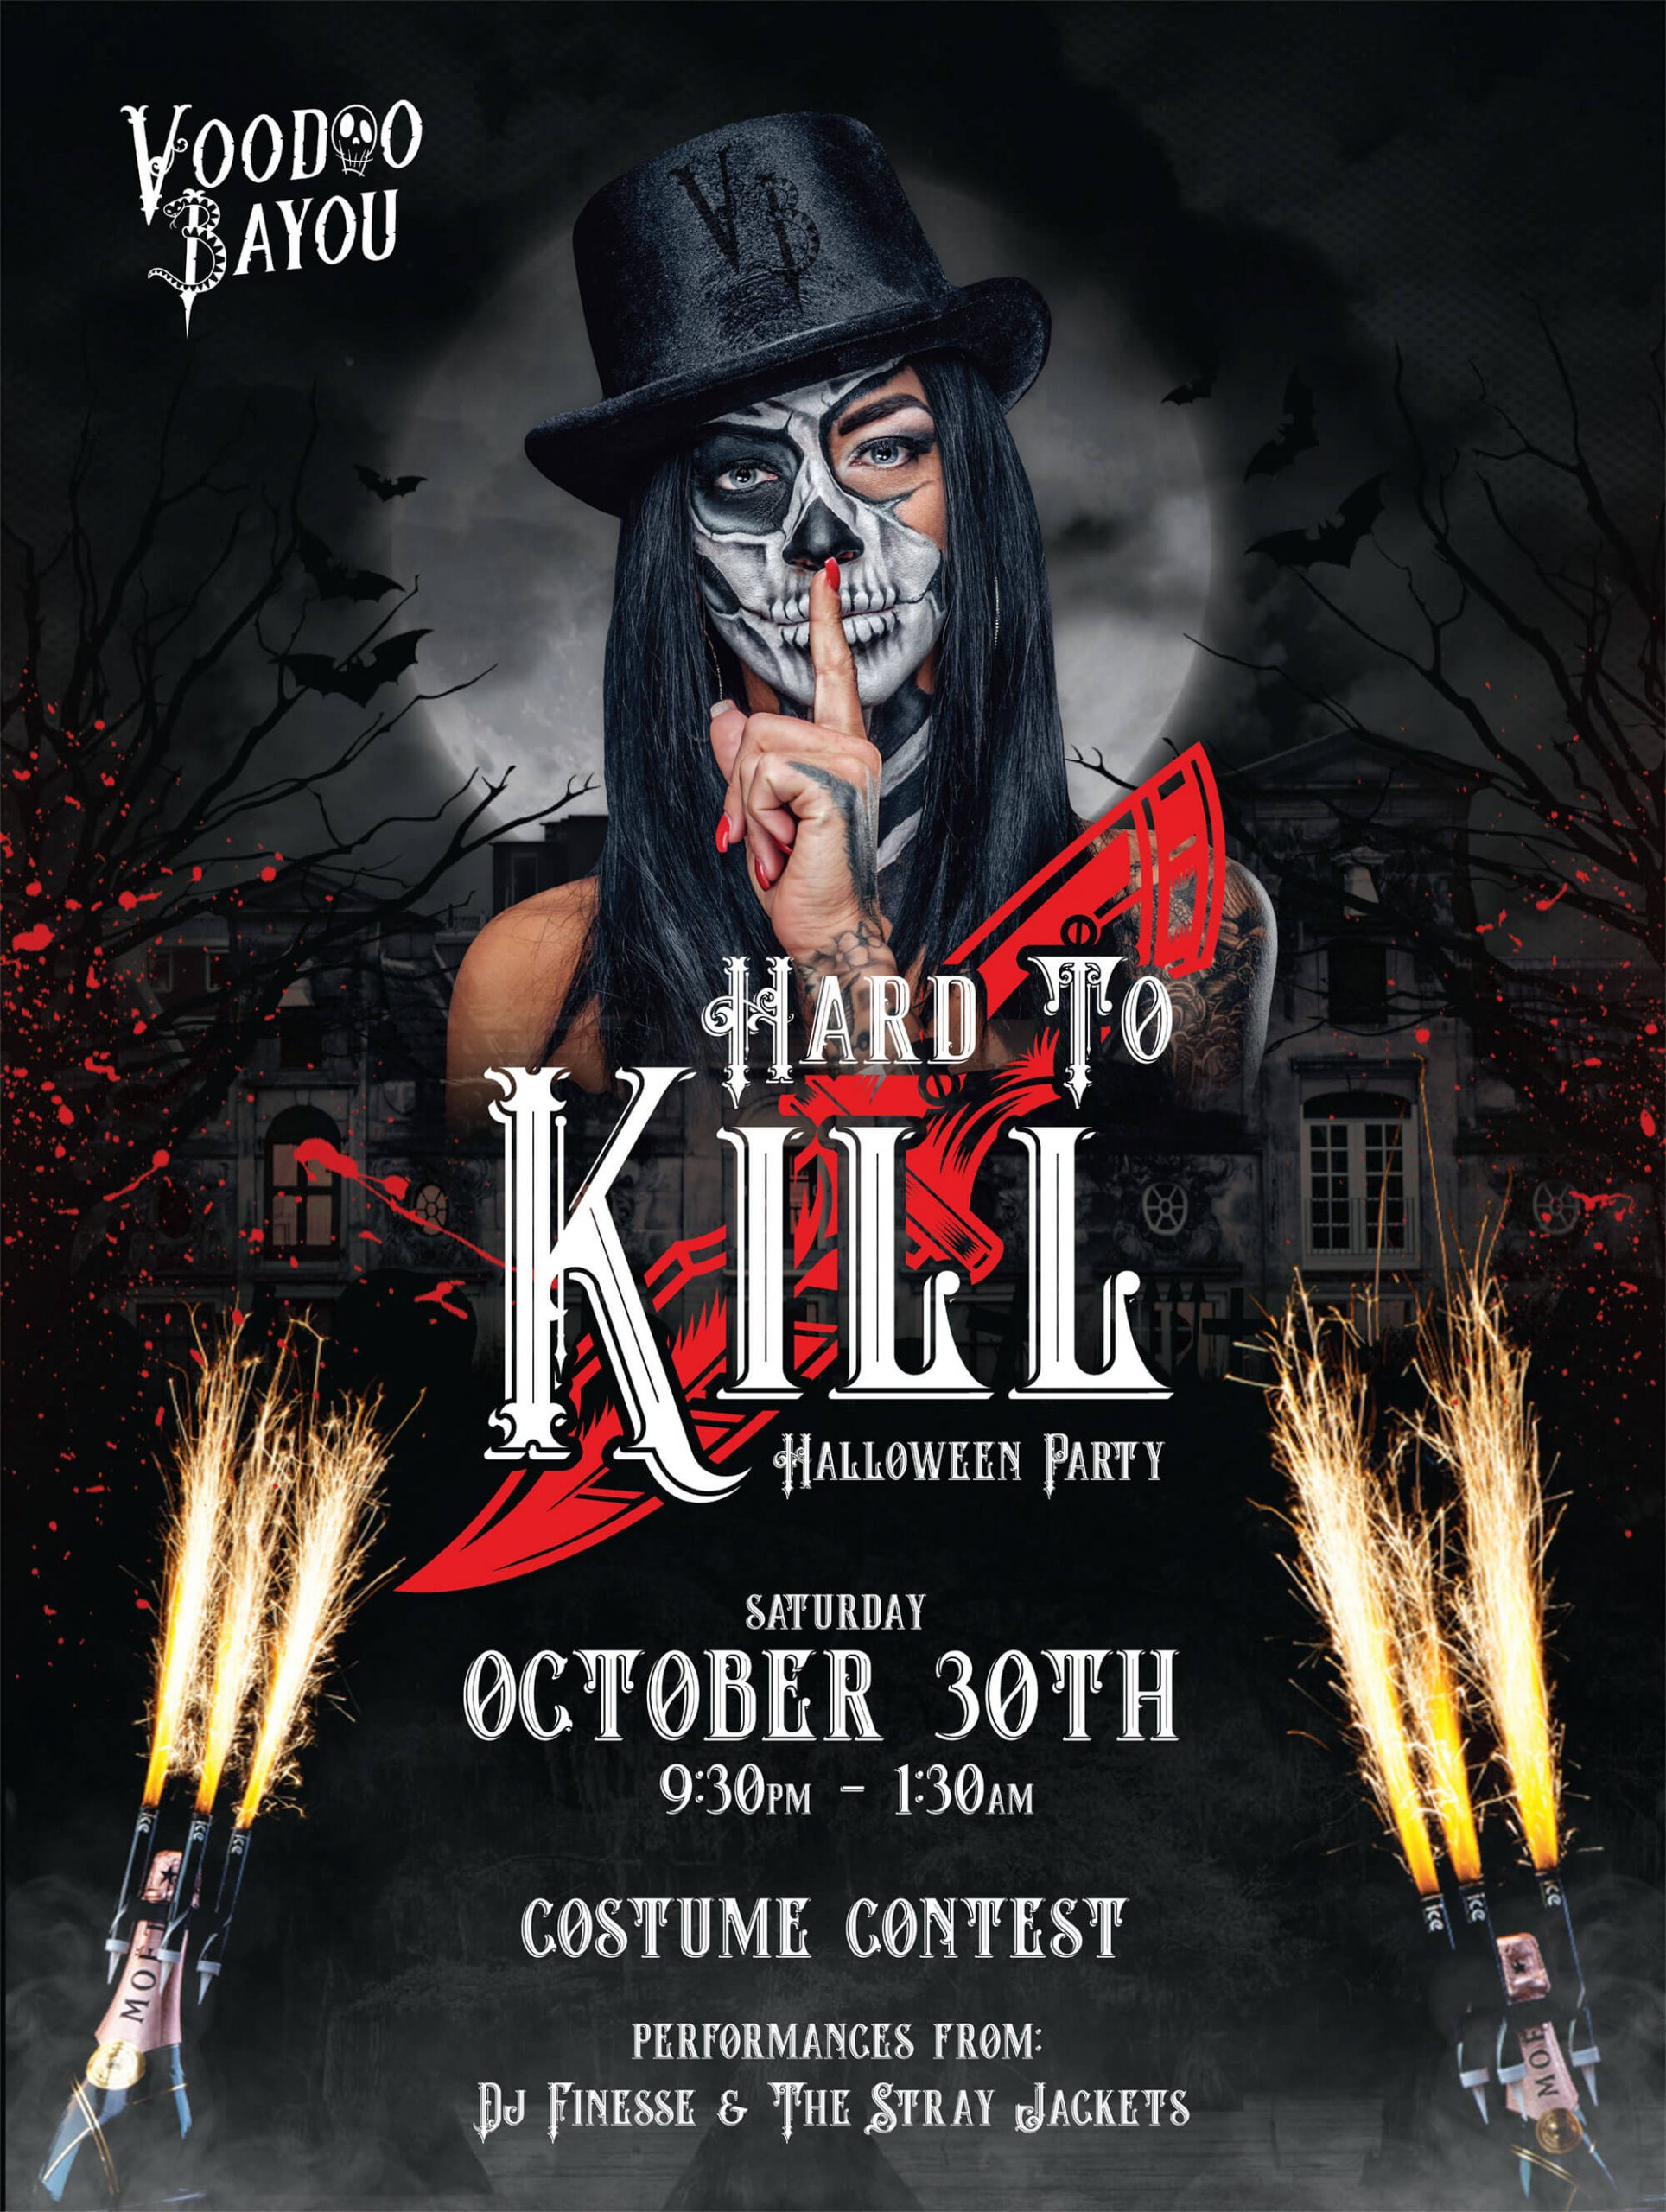 Halloween Party at Voodoo Bayou on October 30th